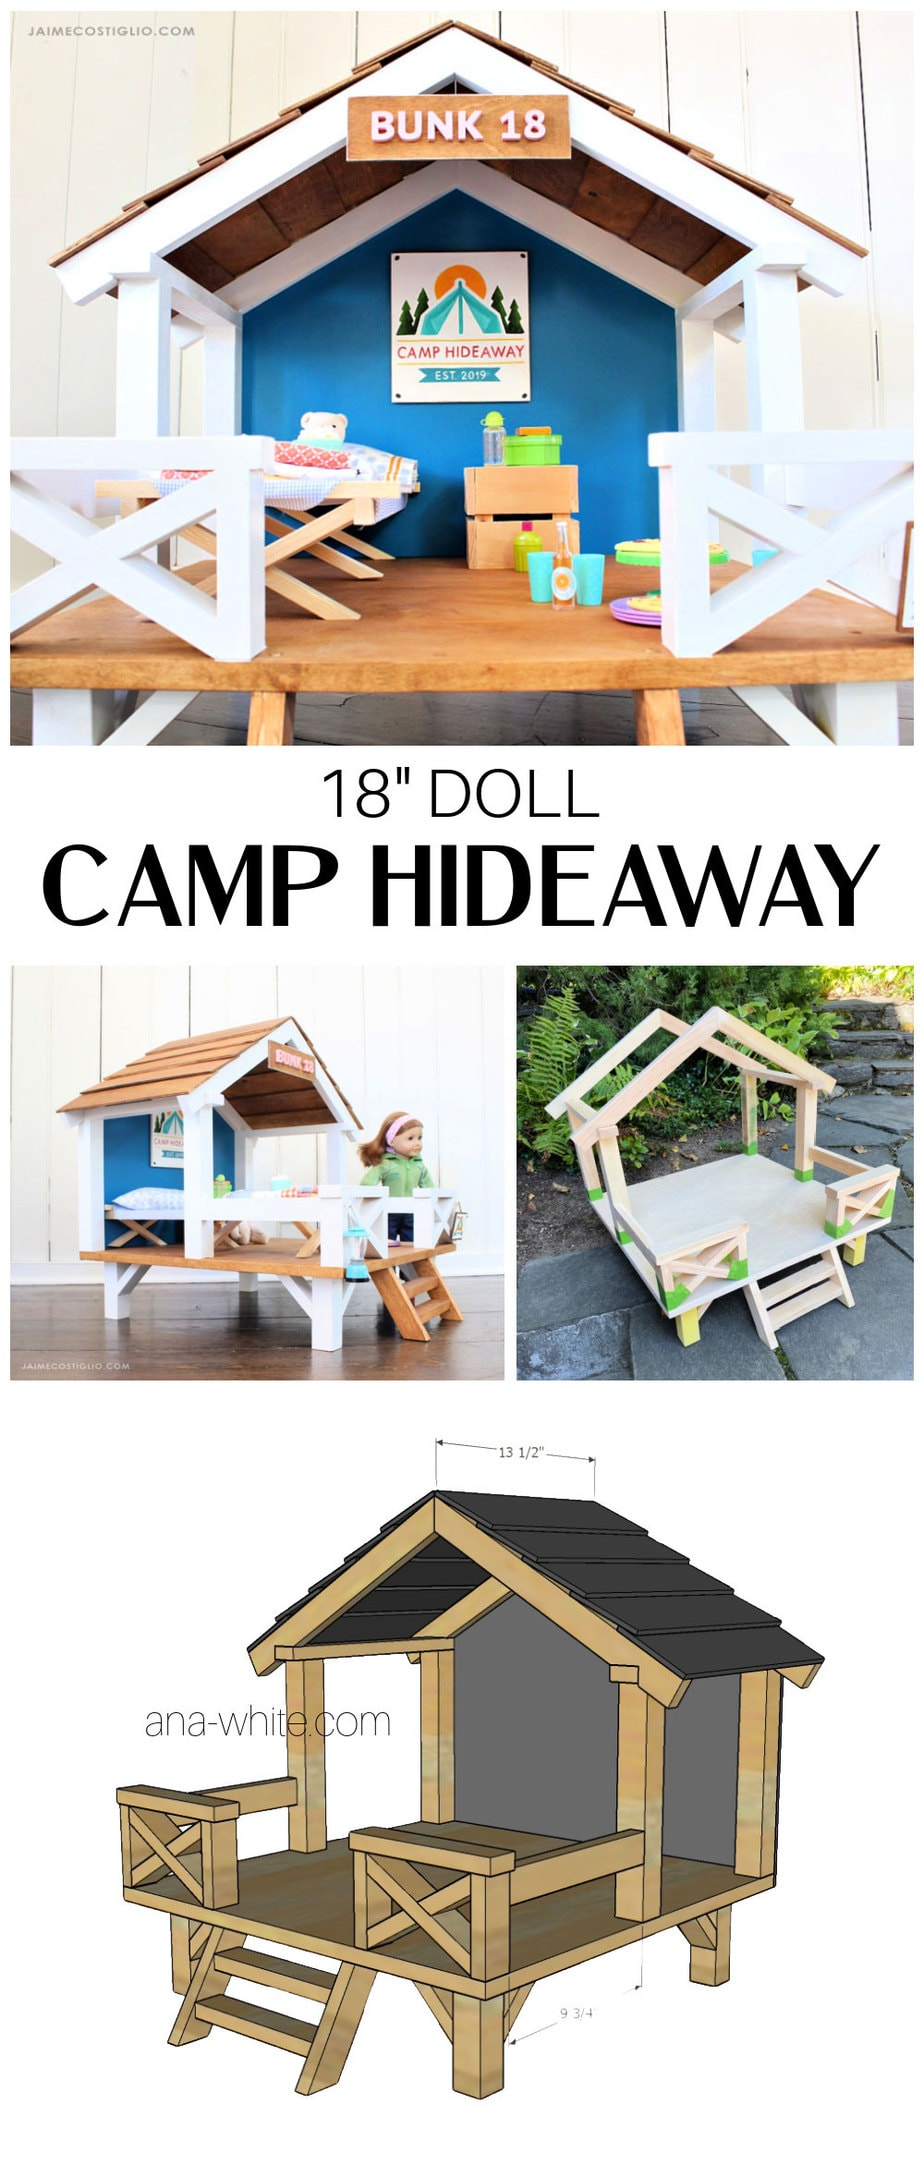 18 inch doll camp hideaway plans